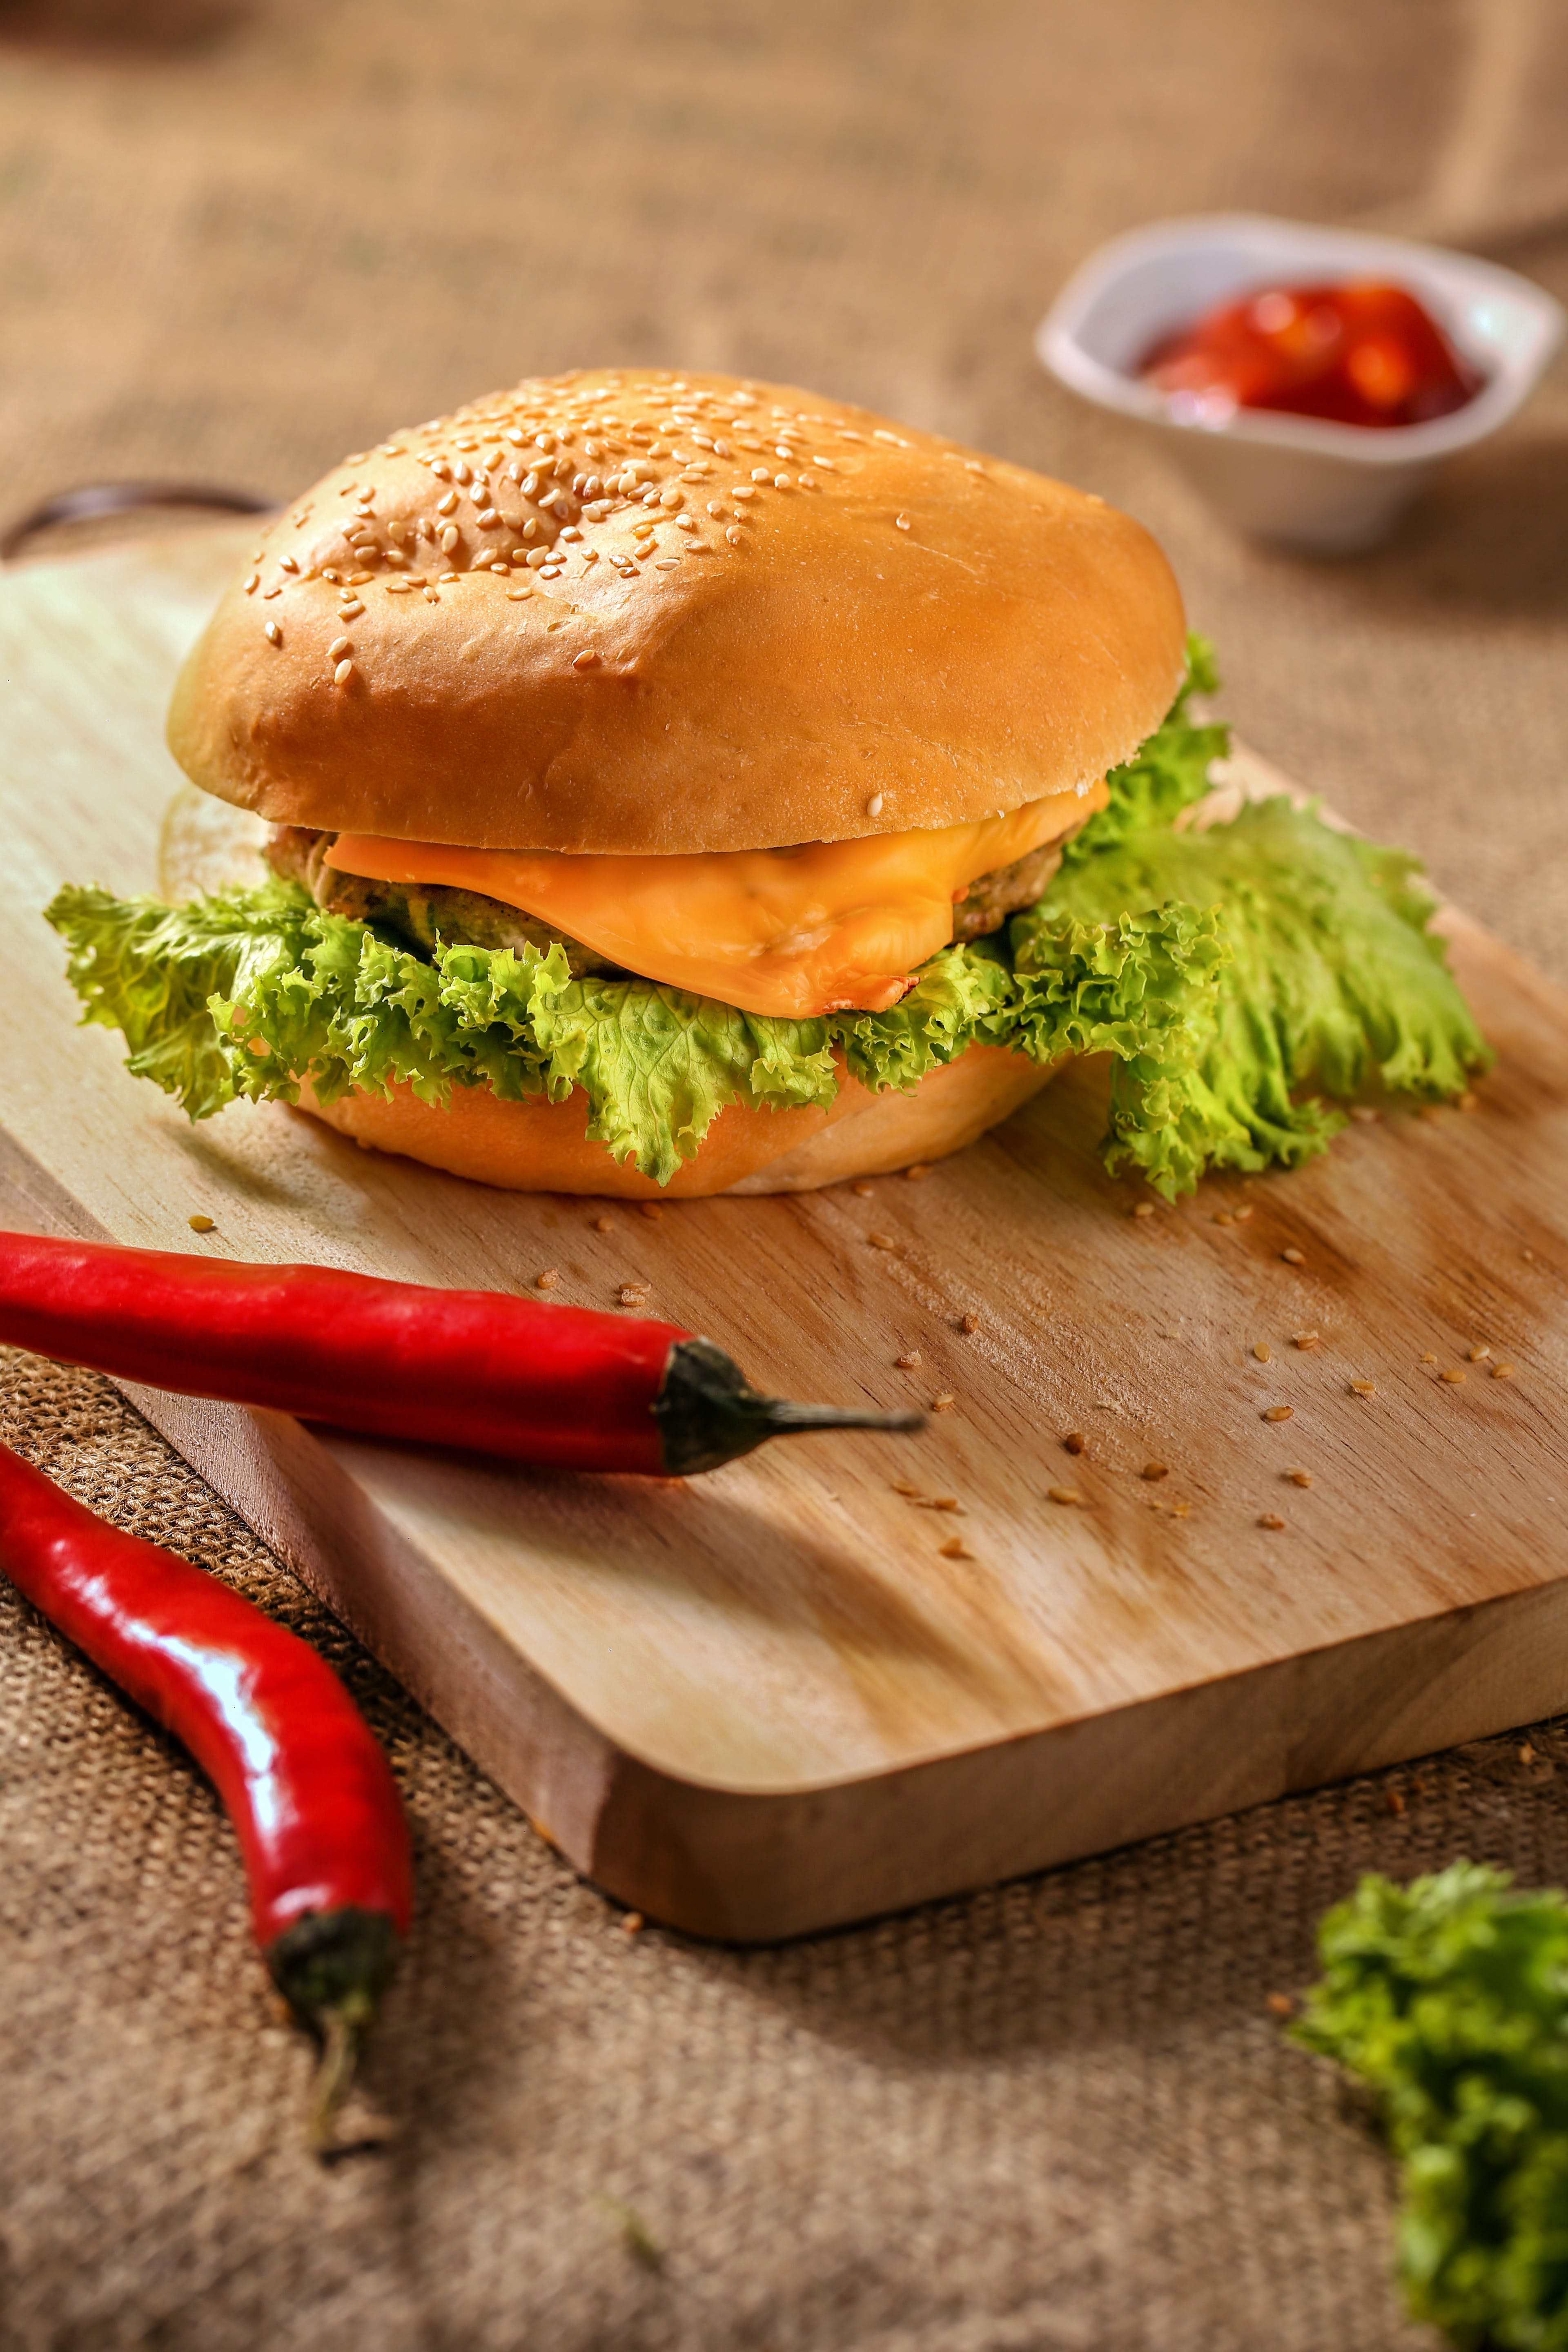 Burger on Top of Wooden Board Near Two Red Chili